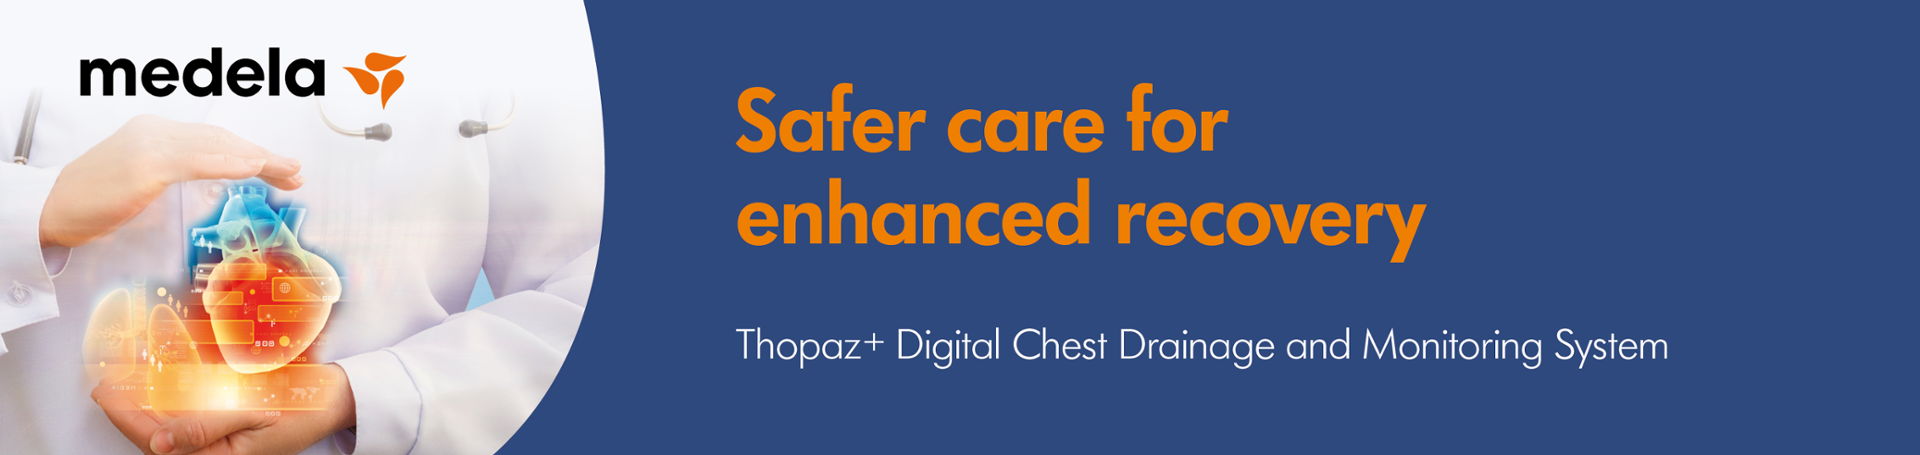 Safer care for enhaced recovery